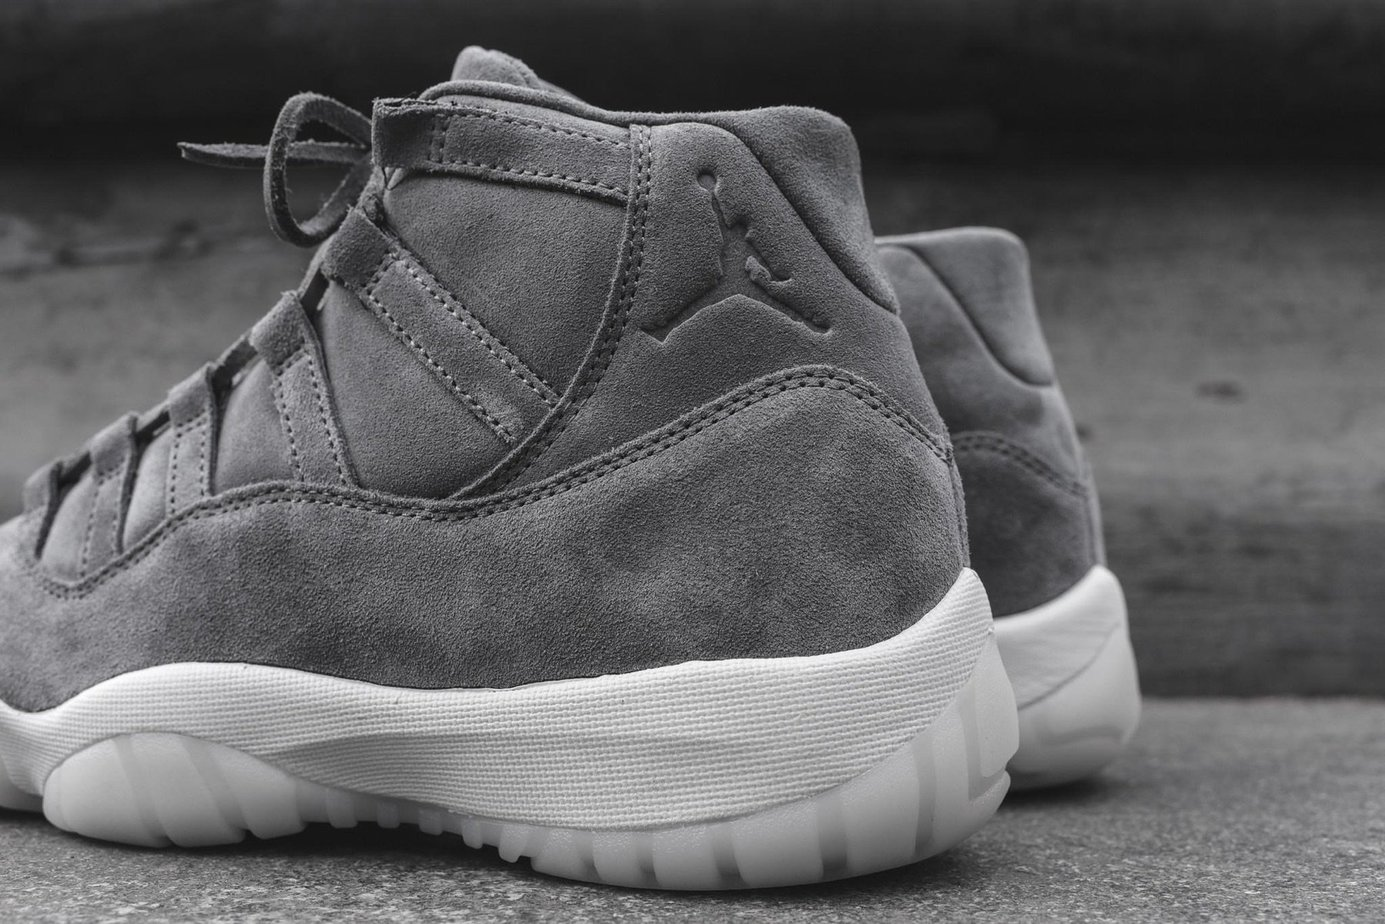 d44830bf4f0c95 Air Jordan 11 Pinnacle Grey Suede Now Available - JustFreshKicks